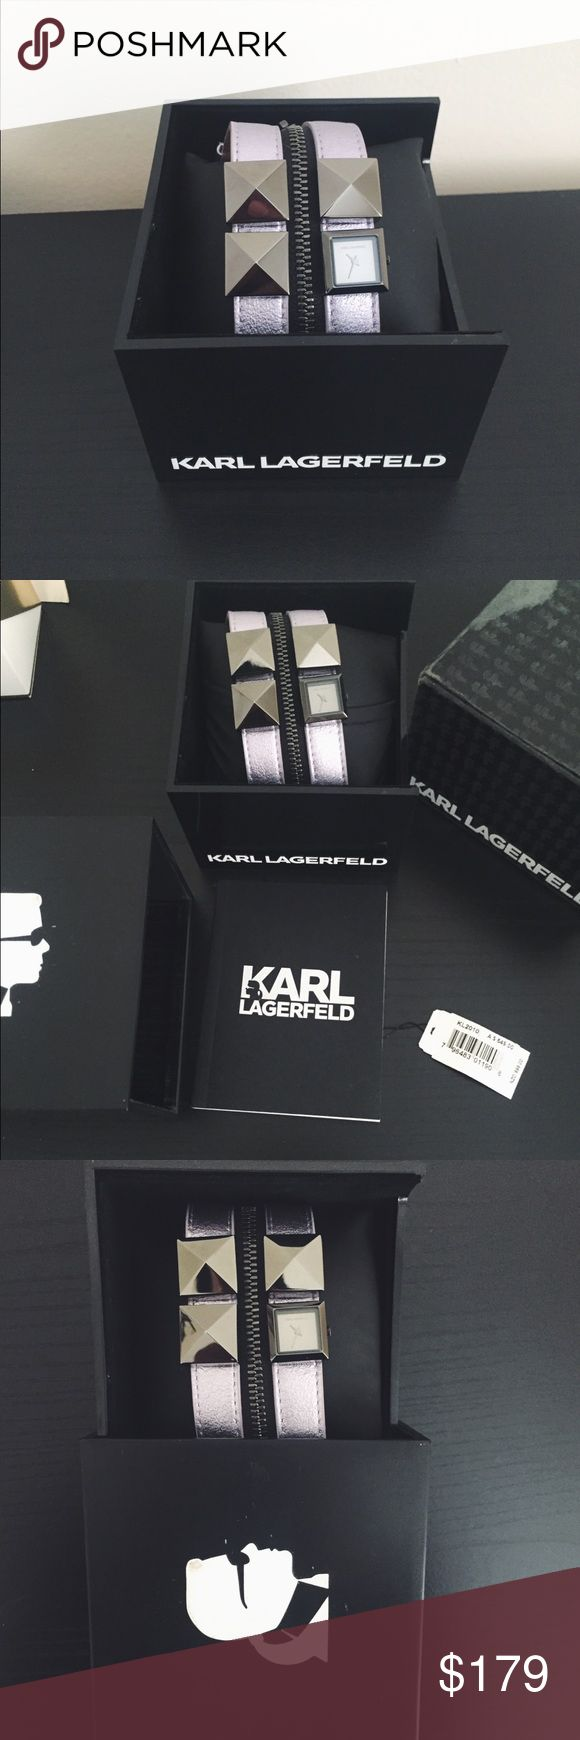 Karl Lagerfeld Zip Leather Watch New! Never been worn. Complete with receipt, price tag, authenticity card, care instructions , box Karl Lagerfeld Accessories Watches